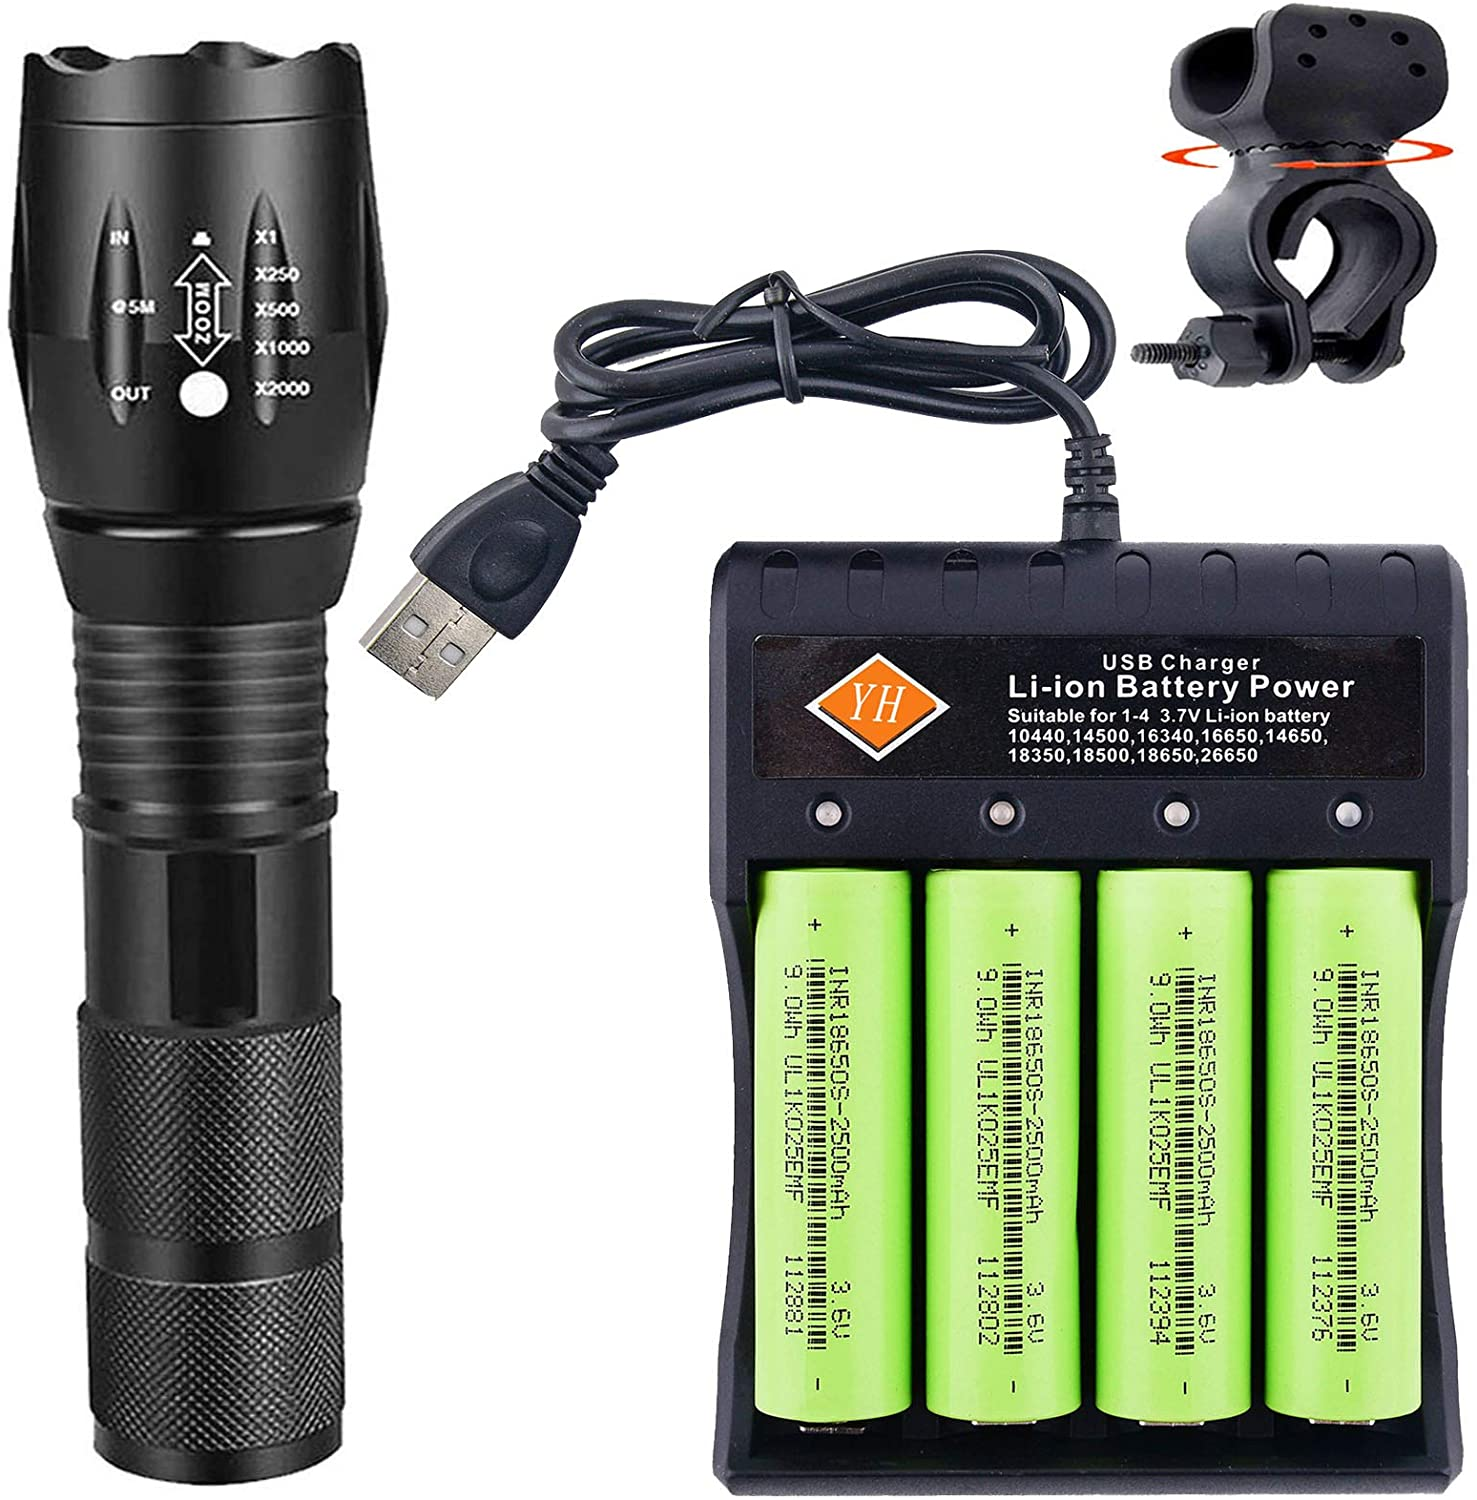 Led 18650 Tactical Flashlight,Super Bright Flash Lights 2000 Lumens Handheld Torch with 4x Rechargeable Battery & 4-Slot Battery Charger for Camping, Outdoors, Emergency, Everyday Portable Flashlights